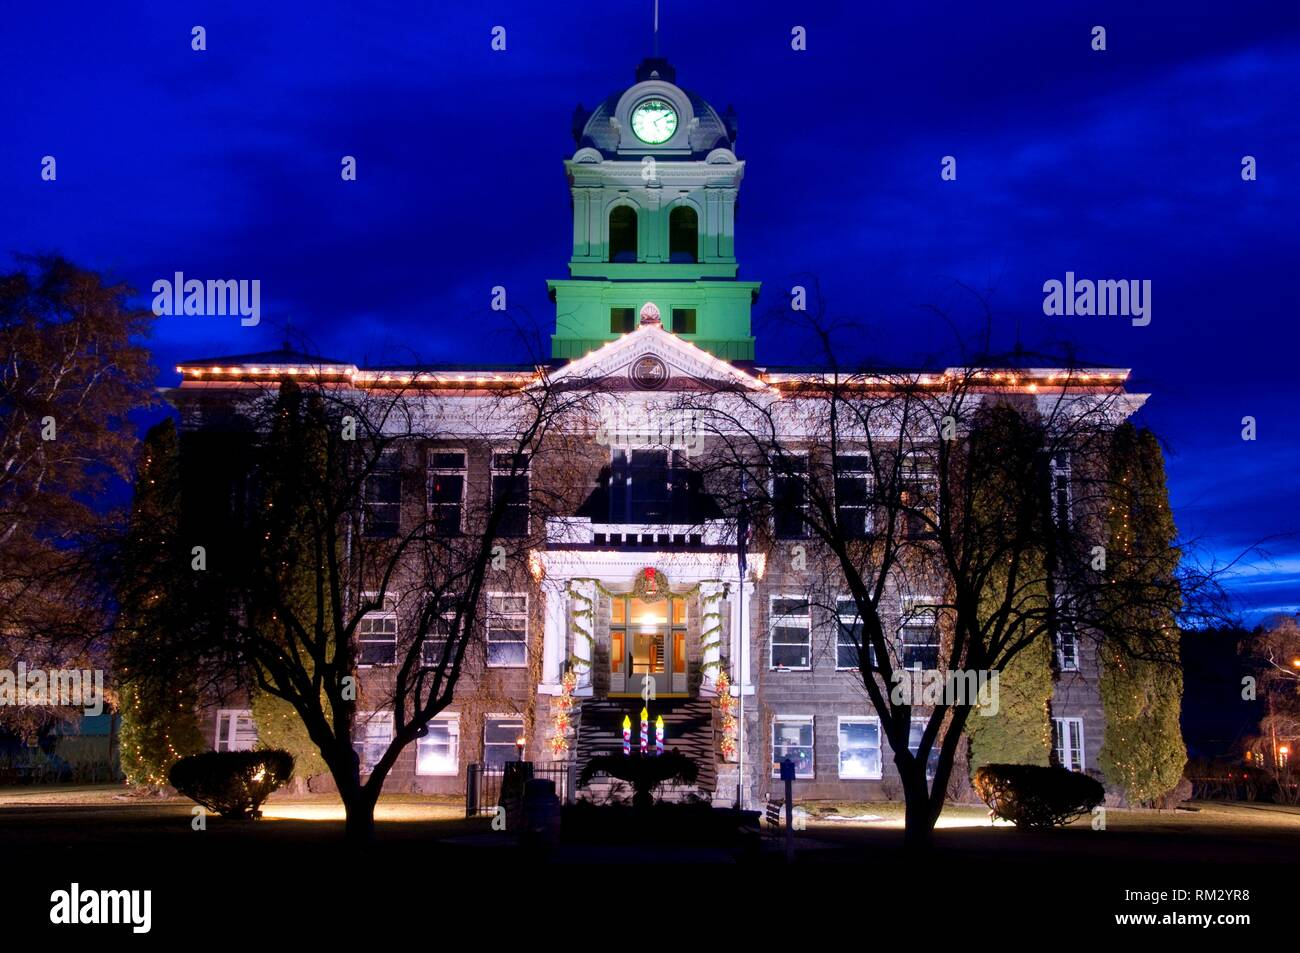 Crook County Courthouse at night, Prineville, Oregon. - Stock Image